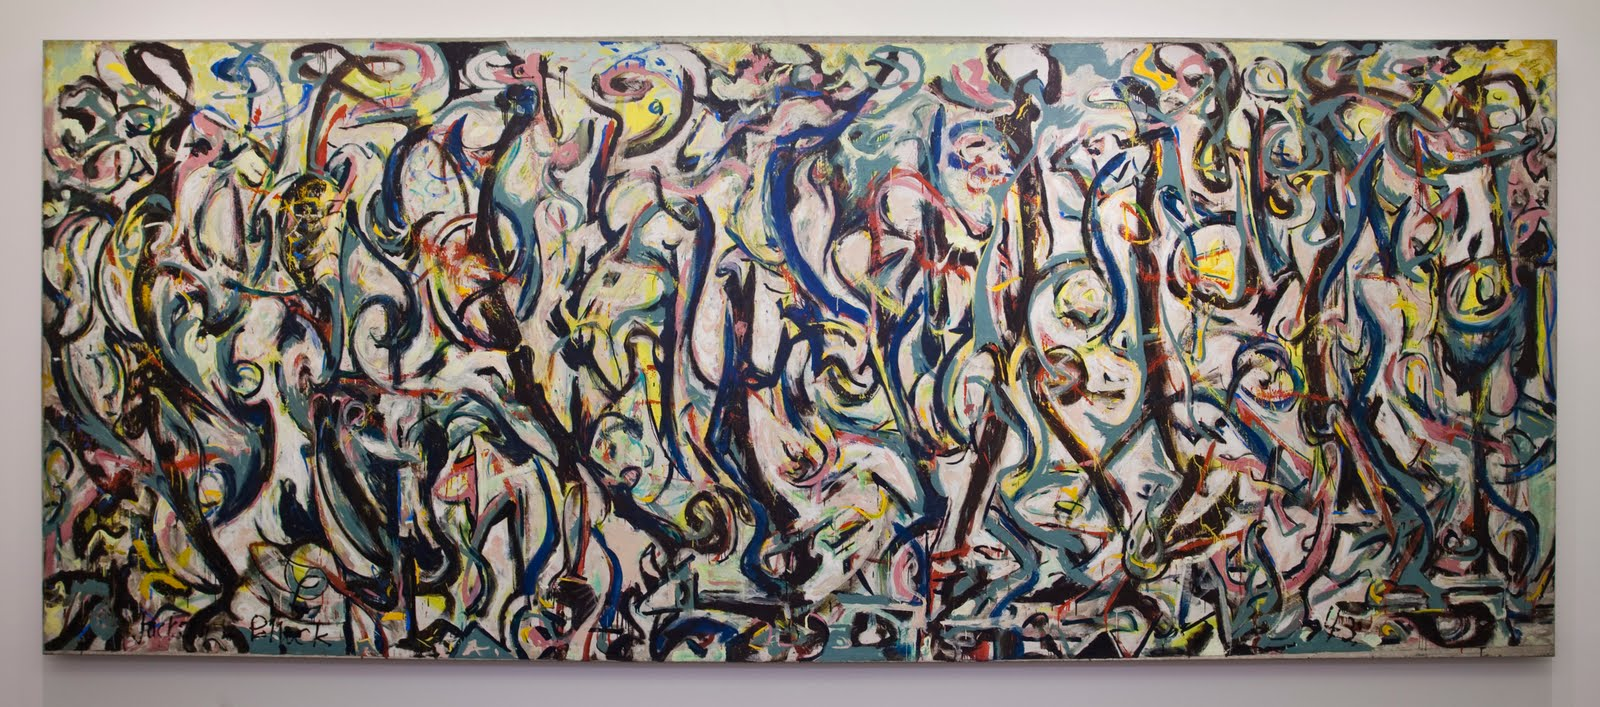 the common curator the value of jackson pollock 39 s mural